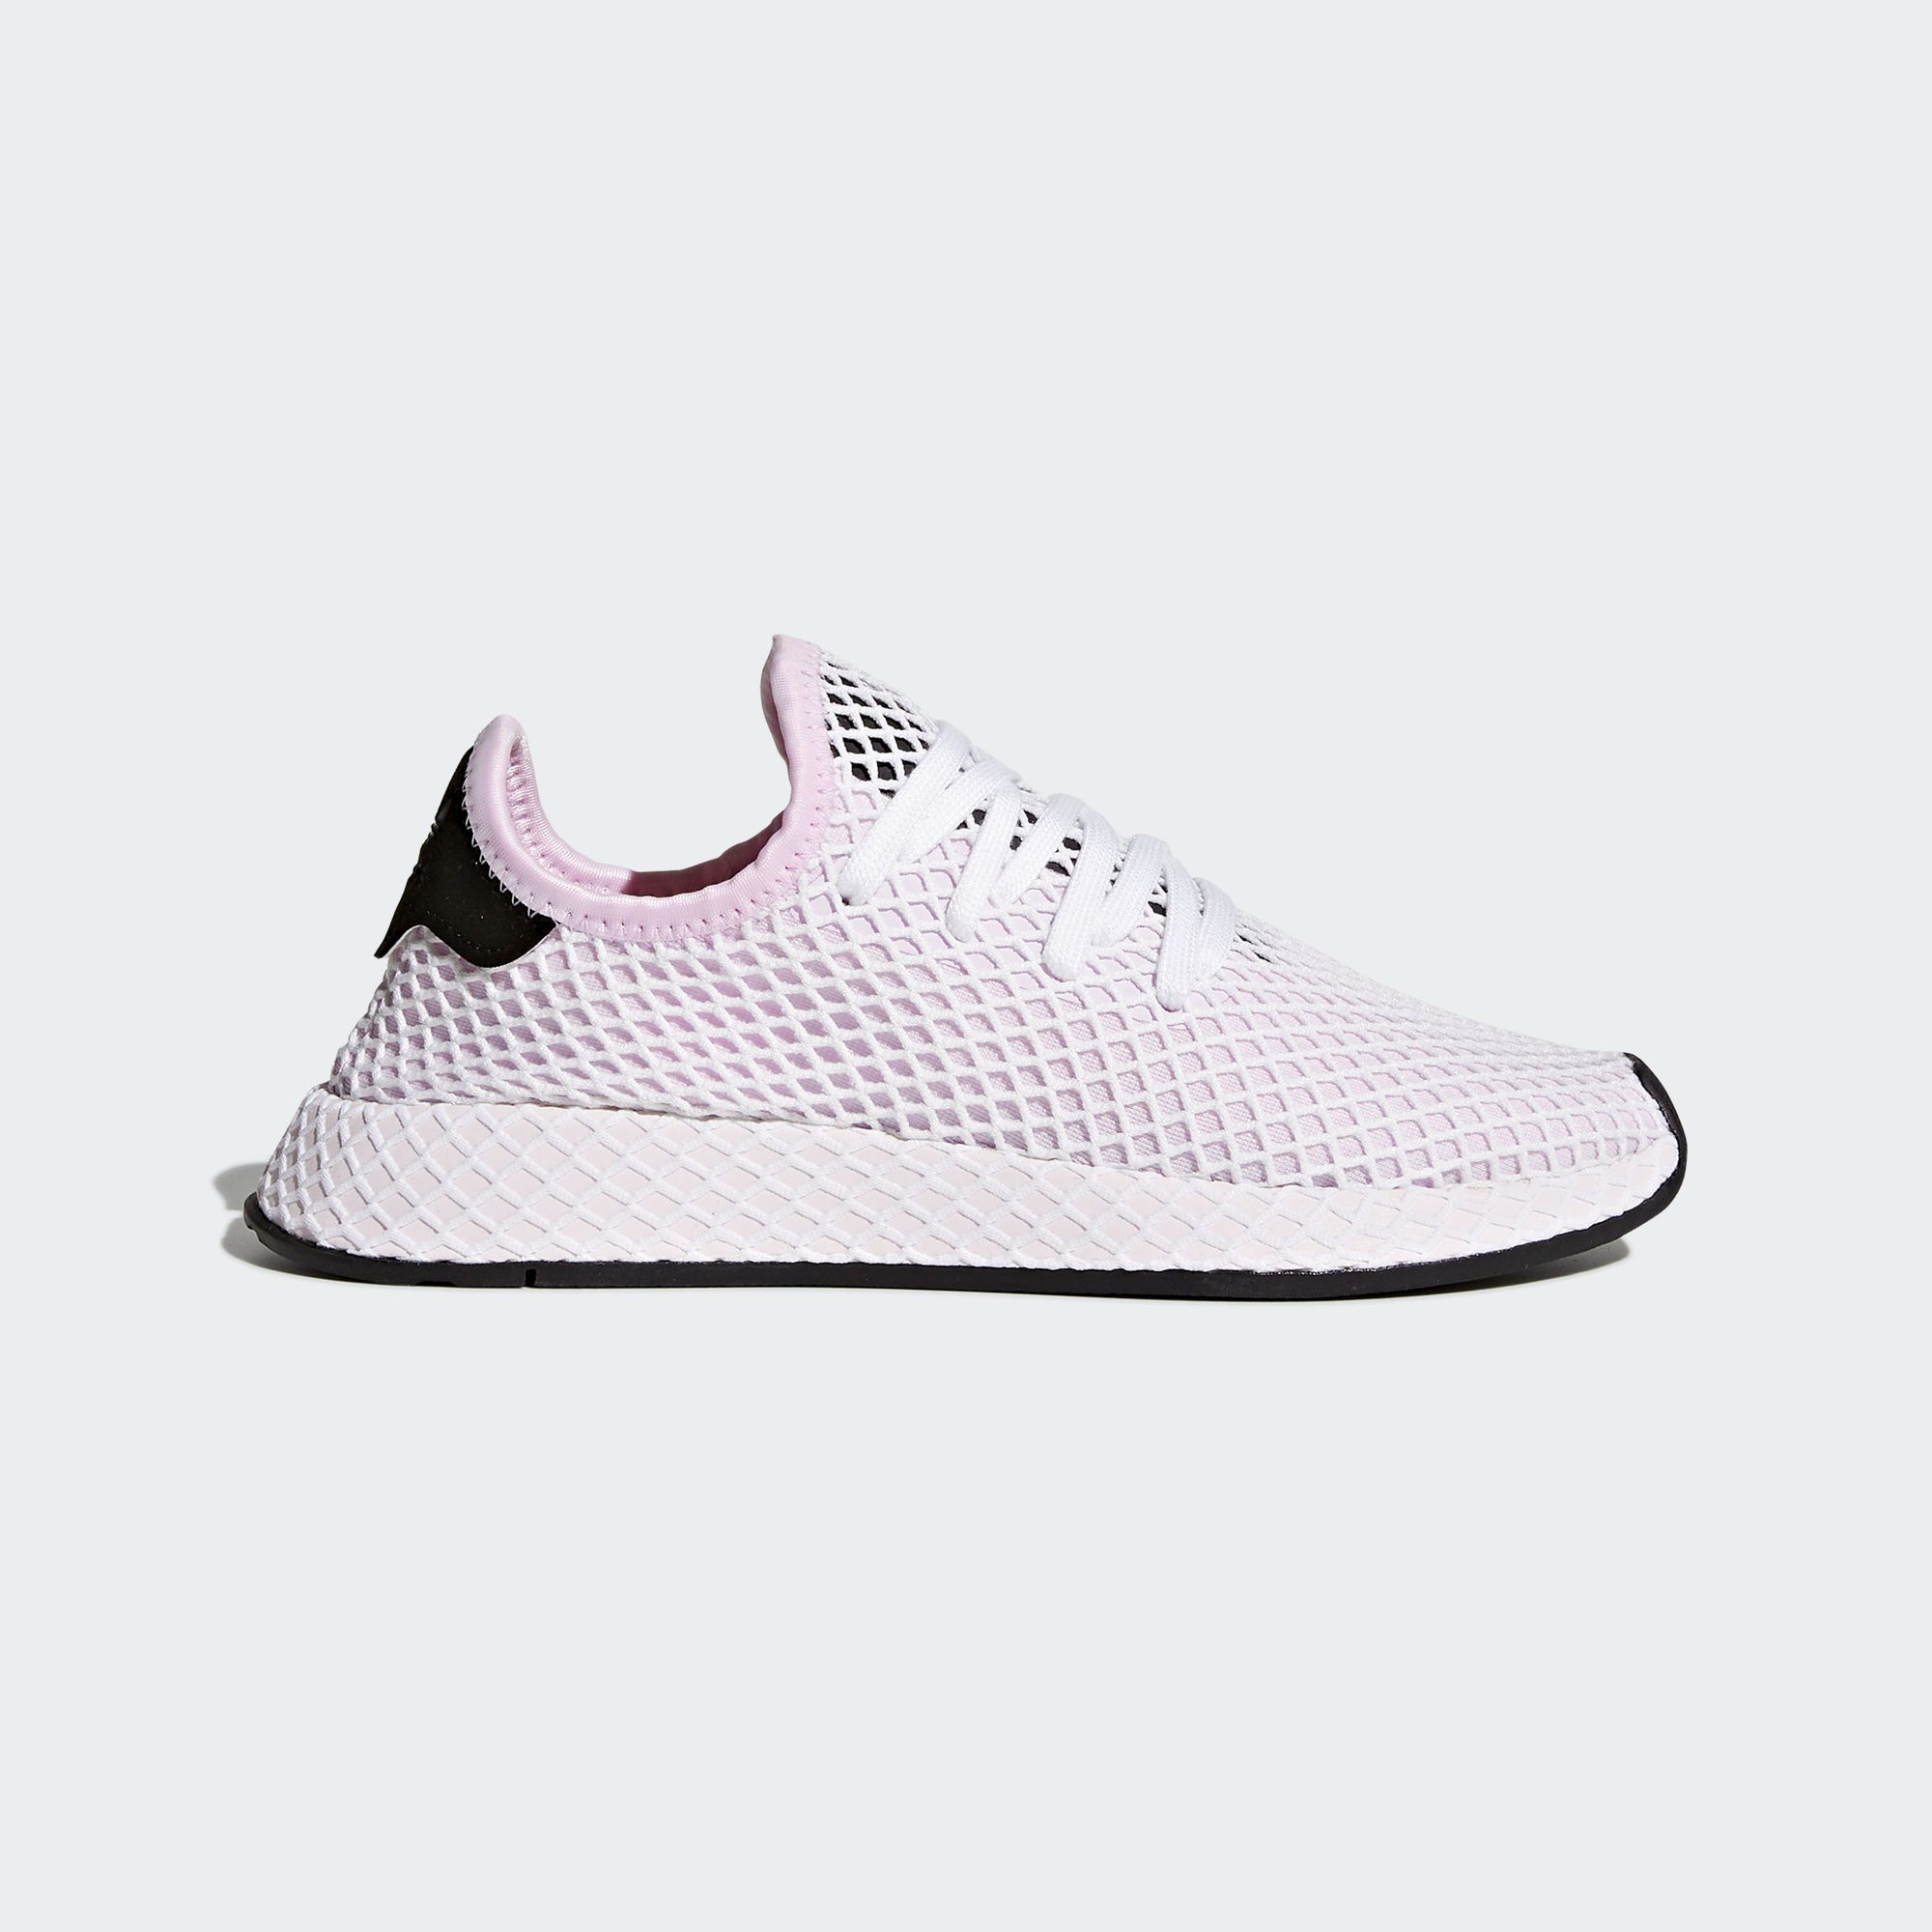 newest collection dbcb0 d4048 Shop the Deerupt Runner Shoes - Pink at adidas.comus! See all the styles  and colors of Deerupt Runner Shoes - Pink at the official adidas online  shop.